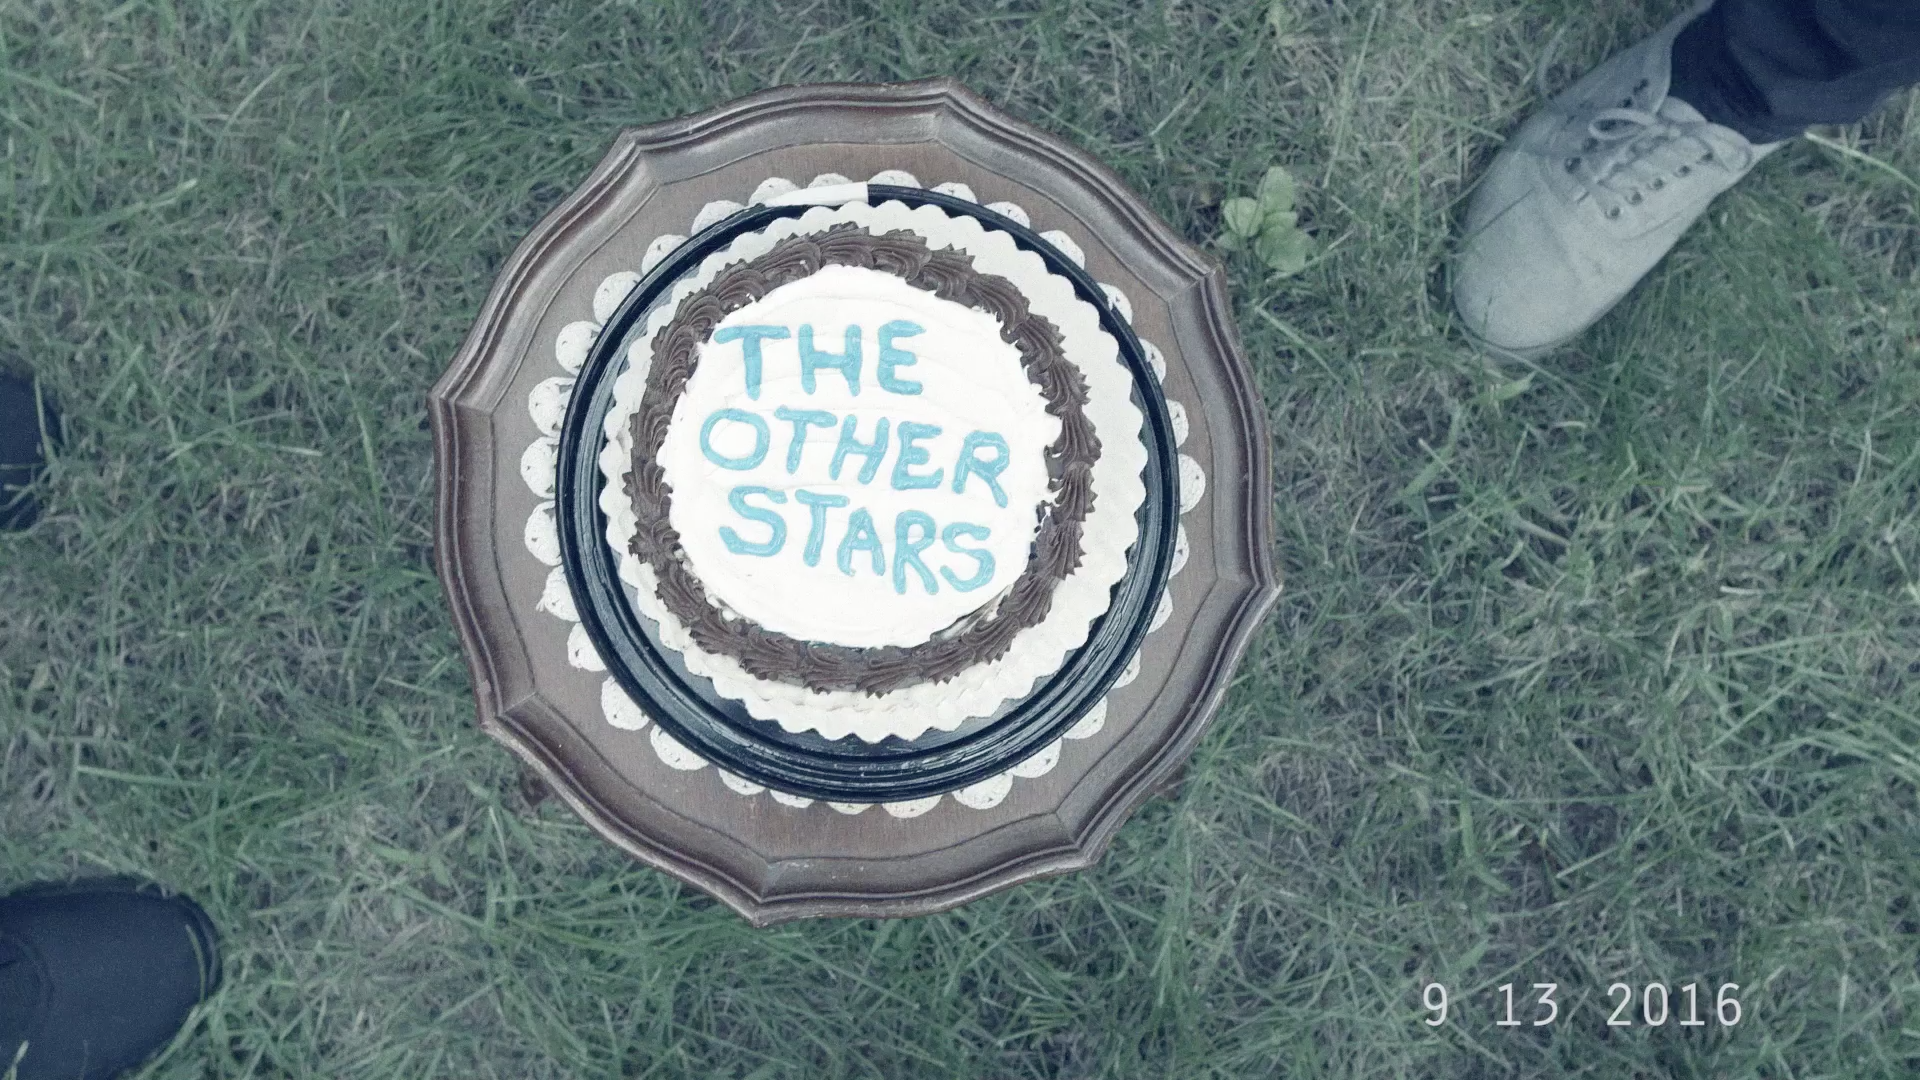 Music video for The Other Stars. The video premiered in Impose Magazine, November 2016 http://www.imposemagazine.com/tv/the-other-stars-you-looked-better-at-the-party